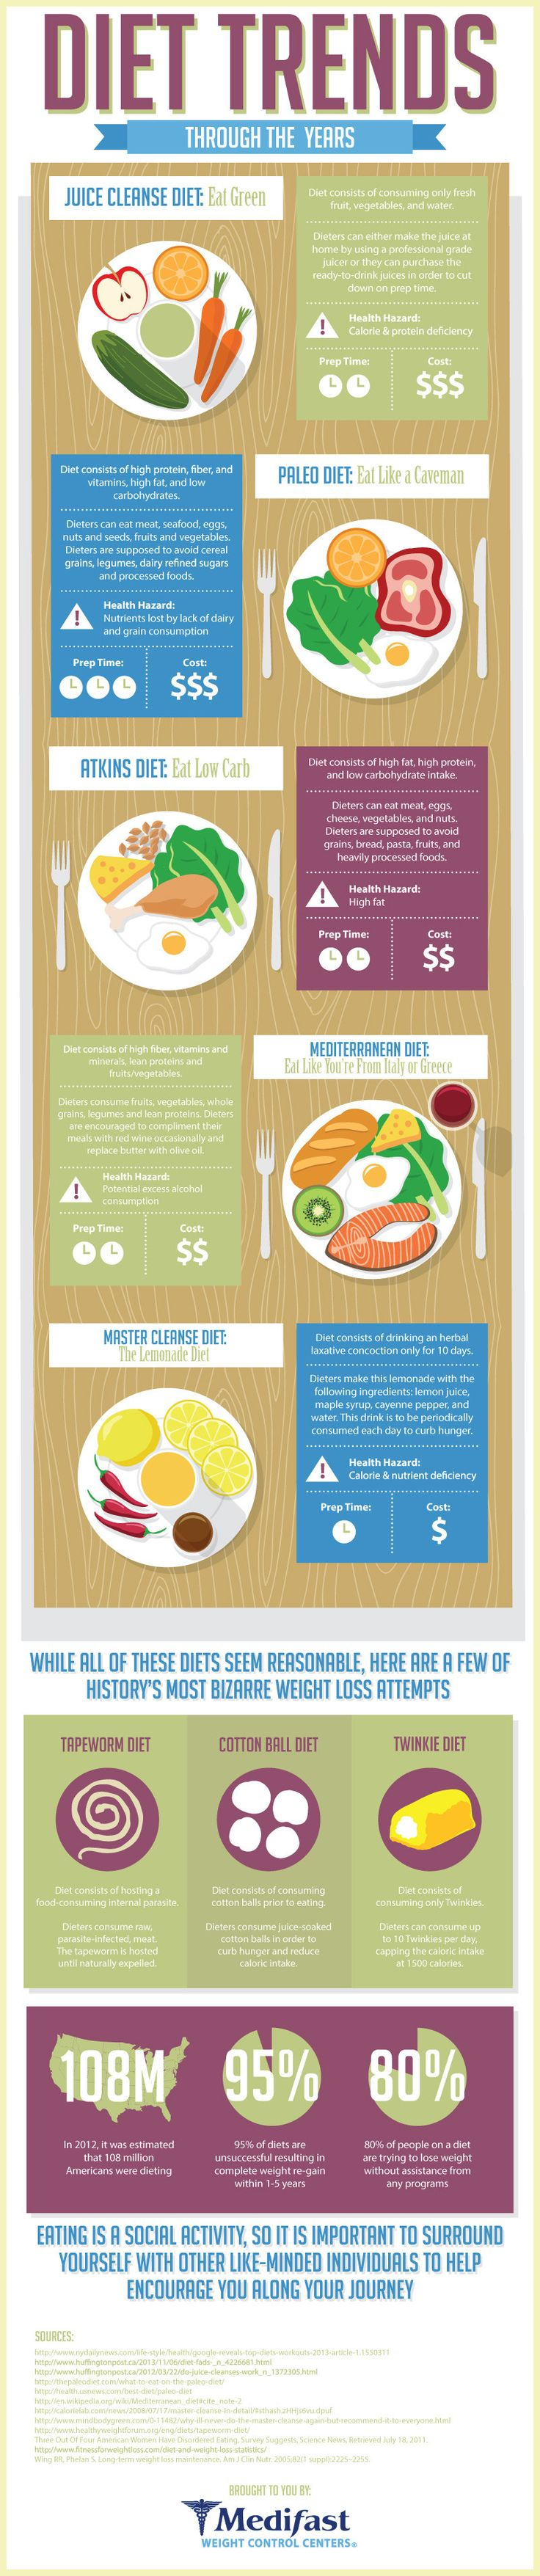 An Illustrated History Of Diets (Infographic)